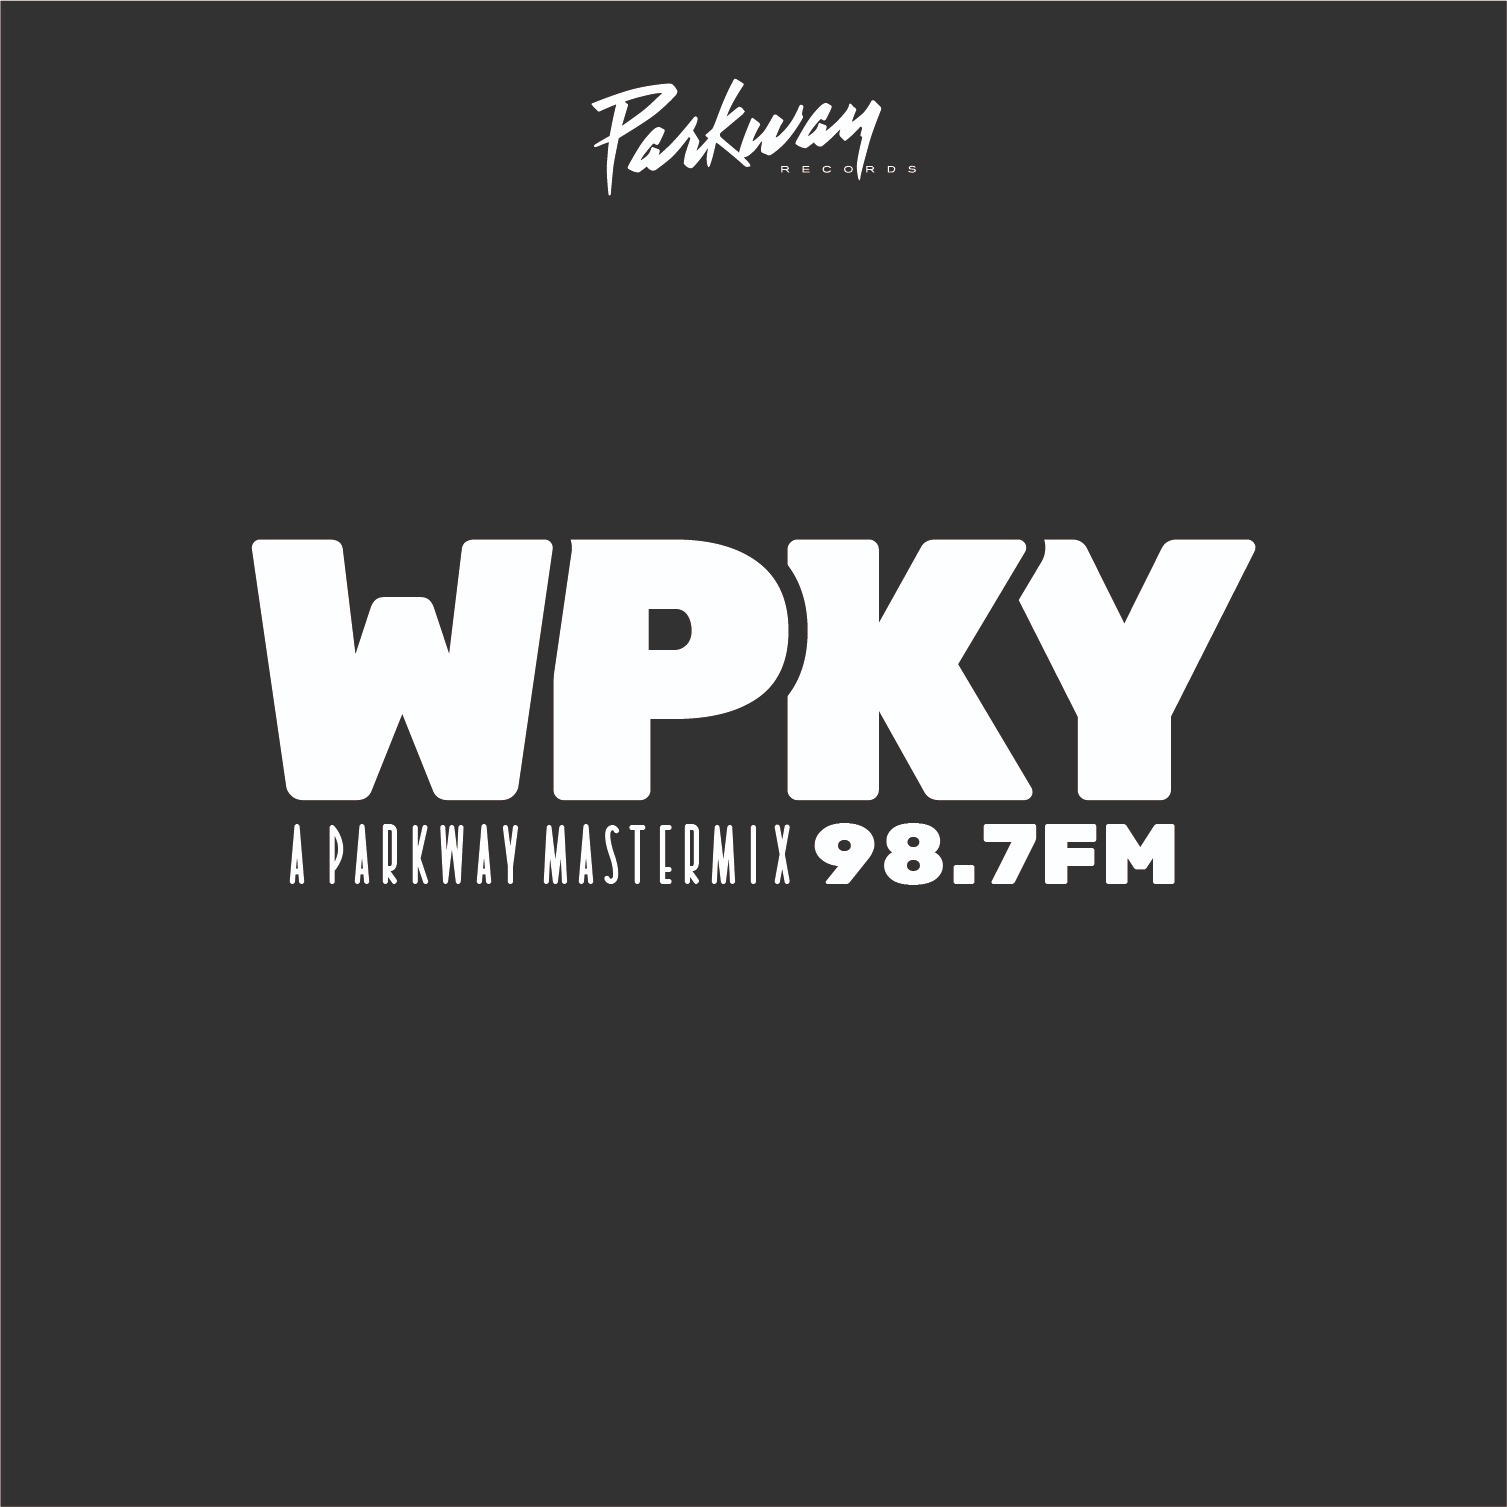 WPKY 001 - A Parkway Mastermix